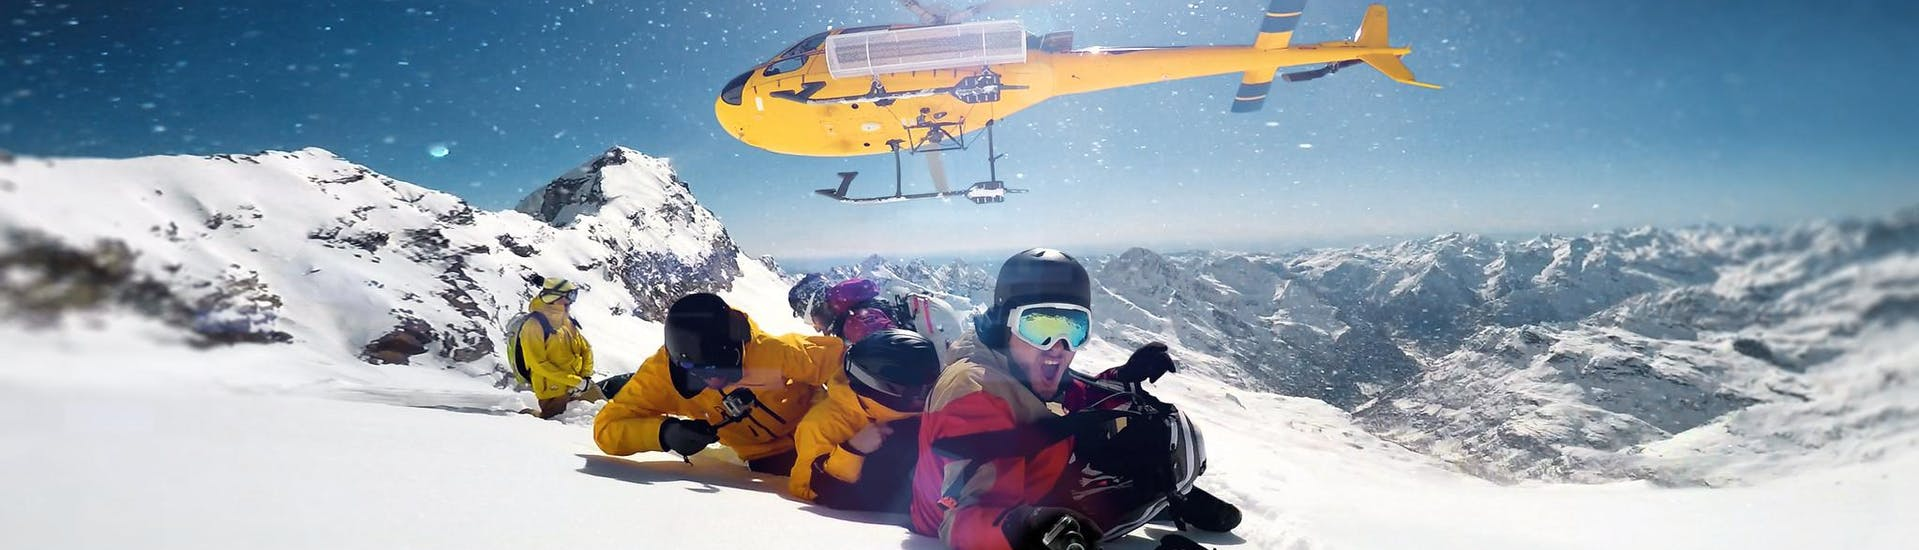 A group of skiers who have booked a Heliskiing Arlberg (excl. Guide) with Arlberg Guides have just been dropped off on top of a mountain by a bright yellow helicopter.